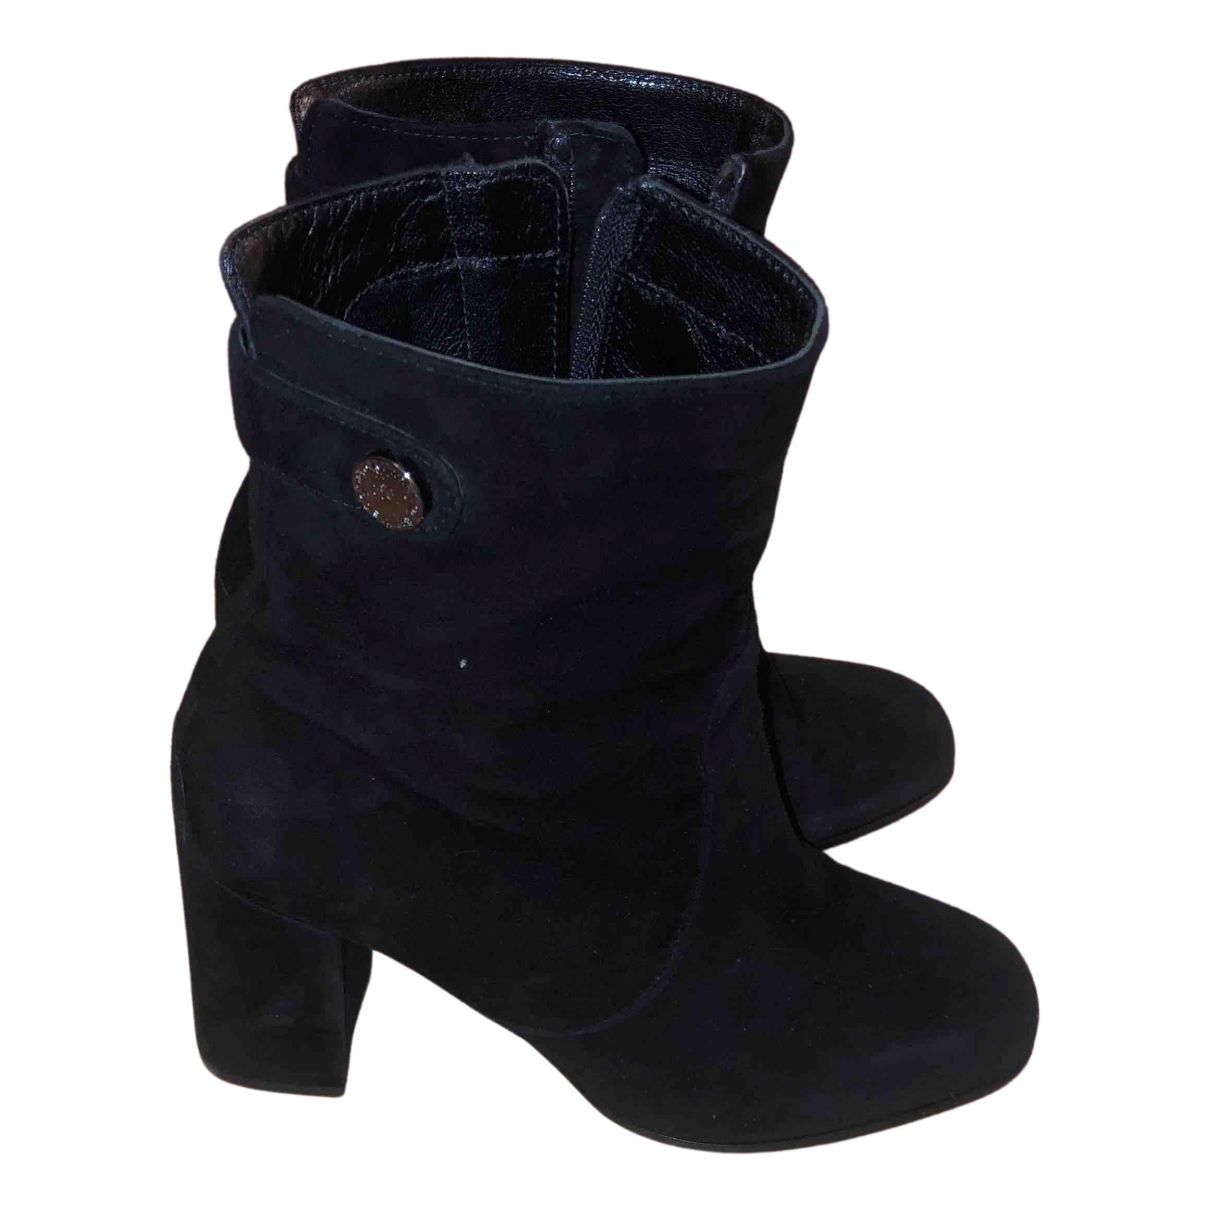 Kennel Und Schmenger N Black Leather Ankle boots for Women 36.5 EU